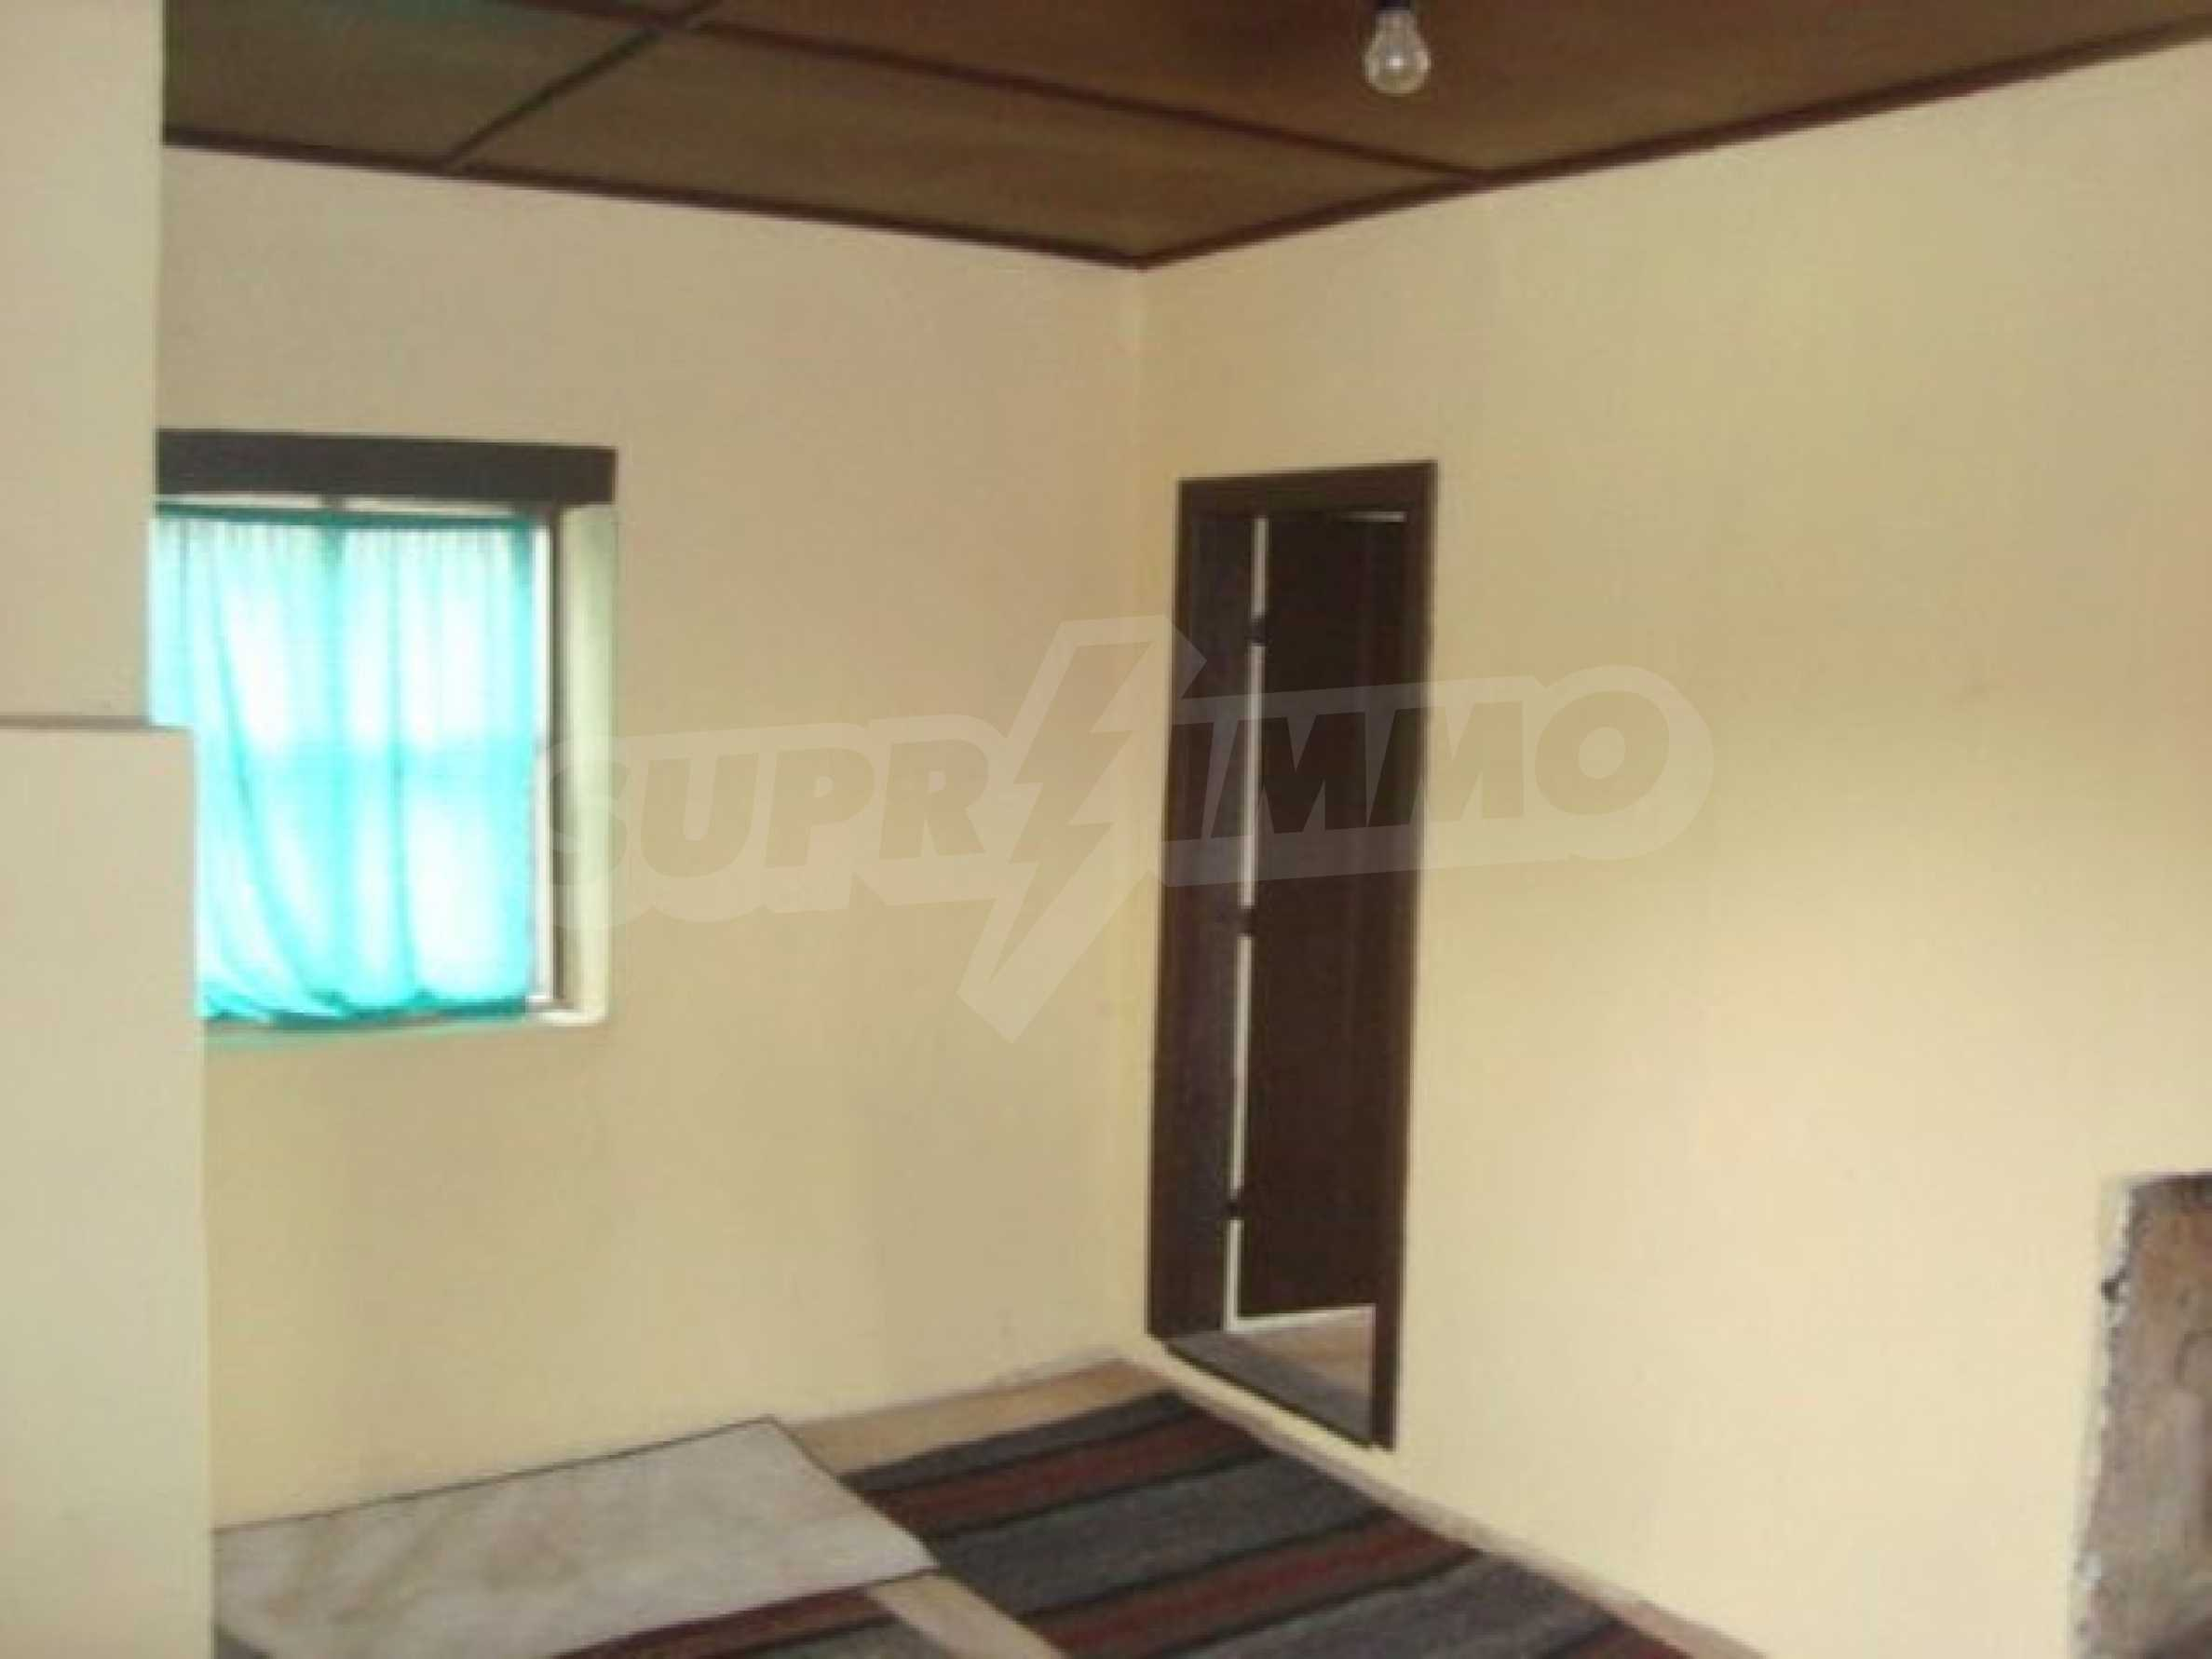 Two-storey house for sale in the village of Dolna Lipnitsa 7